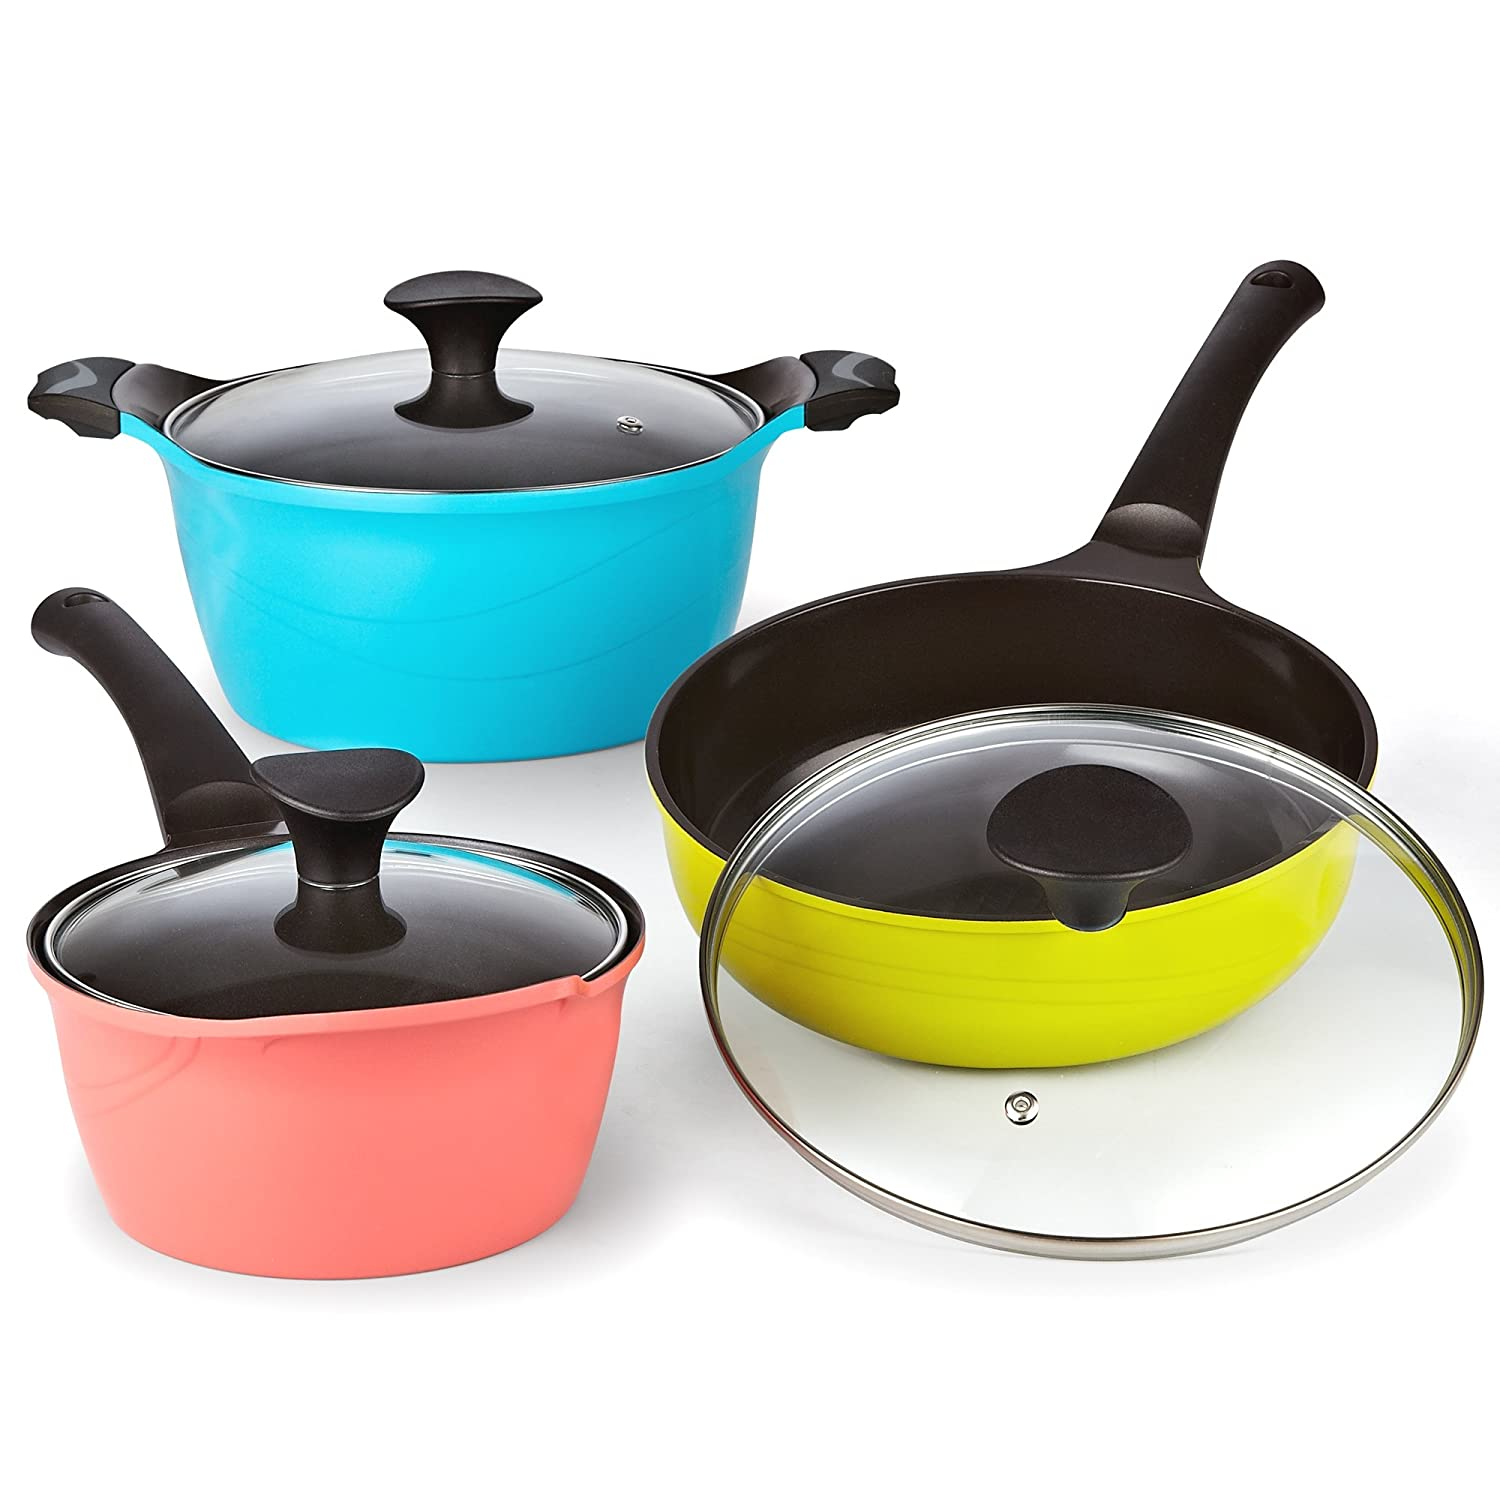 Multicolor Cook N Home 6 Piece Nonstick Ceramic Coating Die Cast Cookware Set